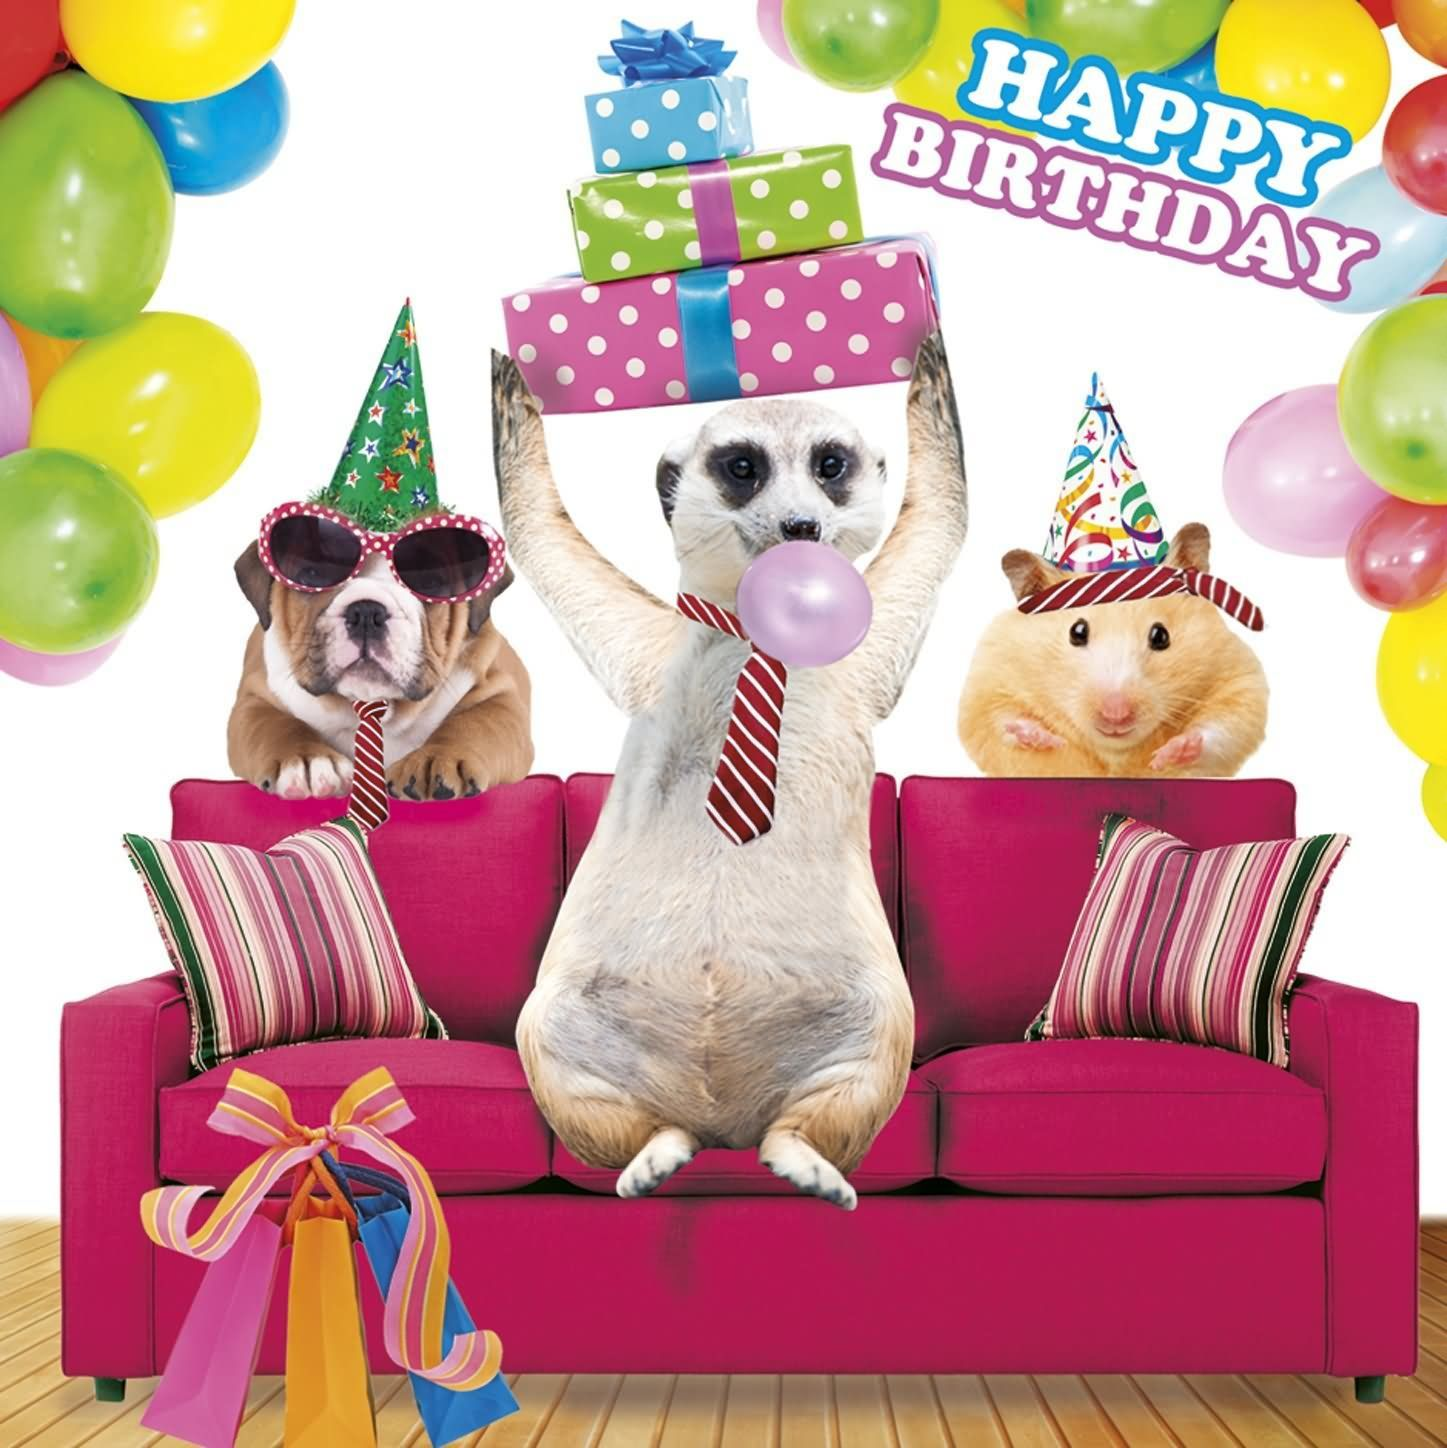 Funny animals 20 most funny birthday pictures funny animals tracks publishing ltd is one of the leading greeting cards publishers in the uk offering a vast selection of greeting cards and stationery kristyandbryce Choice Image